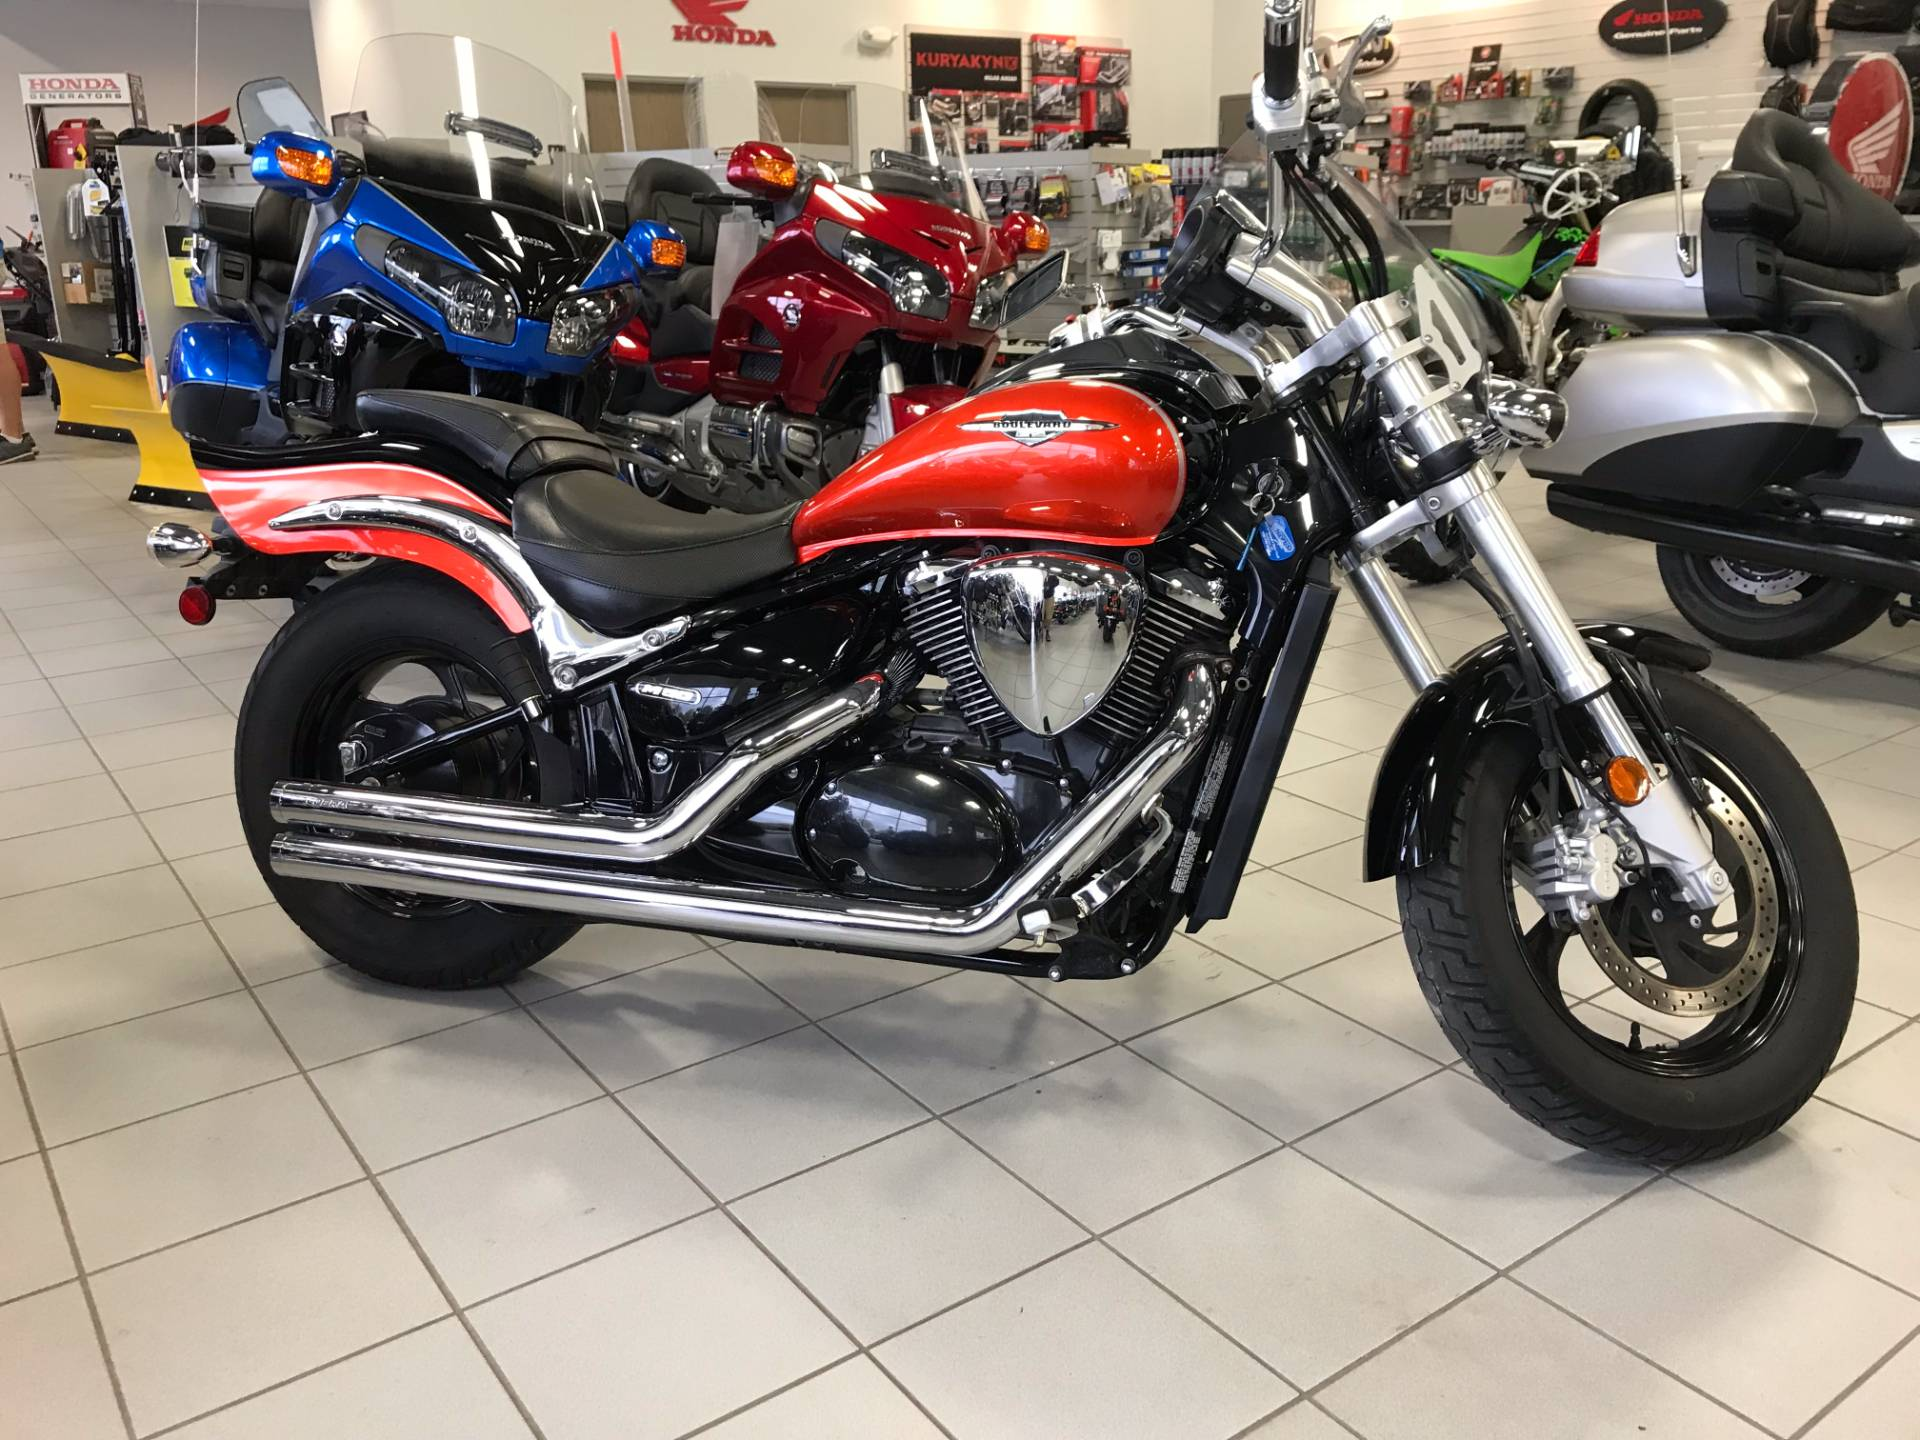 Used 2009 Suzuki Boulevard M50 Special Edition Motorcycles in ...